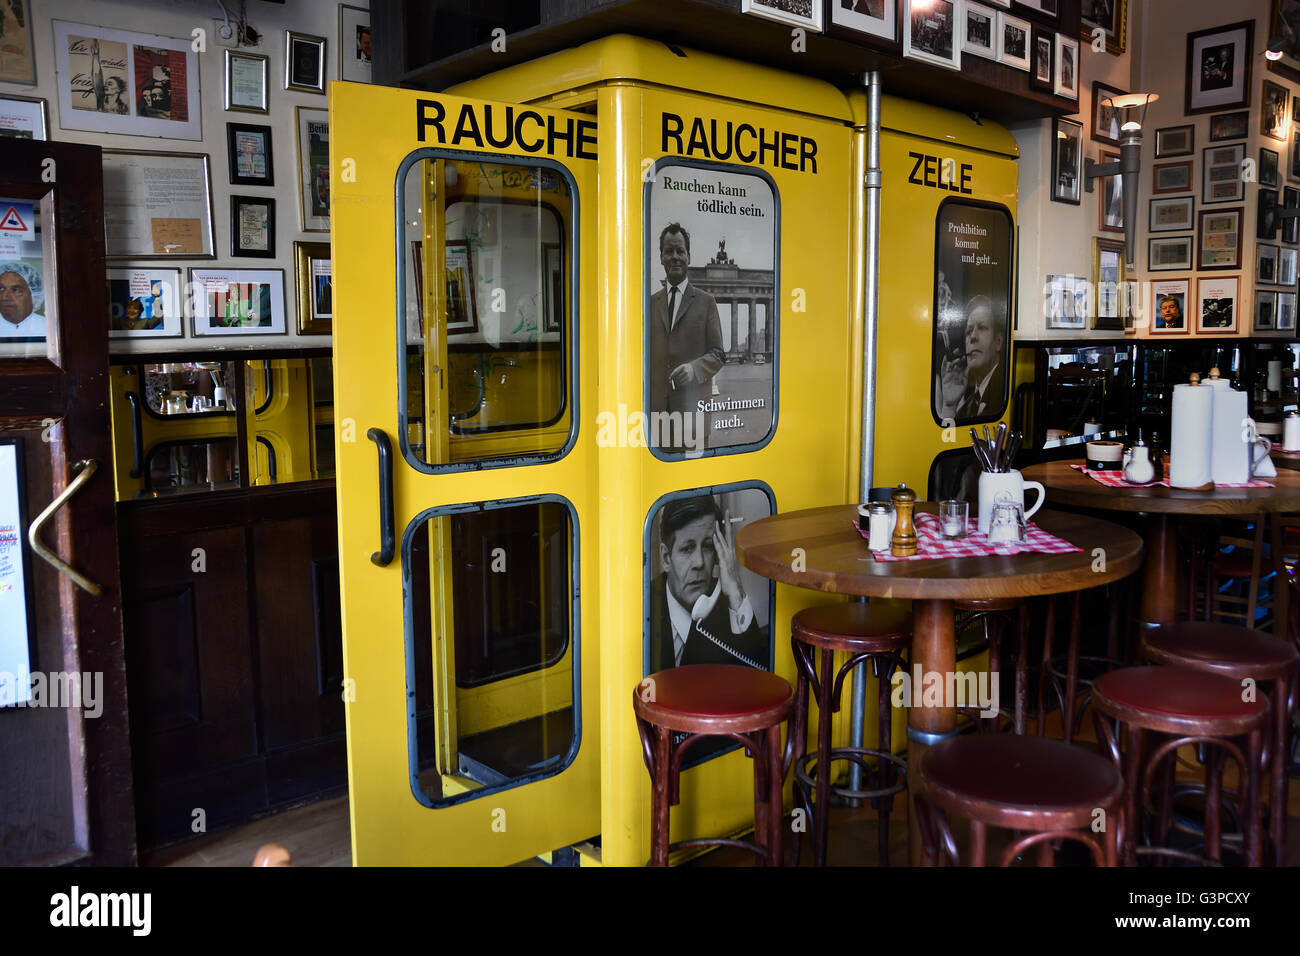 raucher zeller smoking booth old telephone booth berlin germany stock photo royalty free. Black Bedroom Furniture Sets. Home Design Ideas